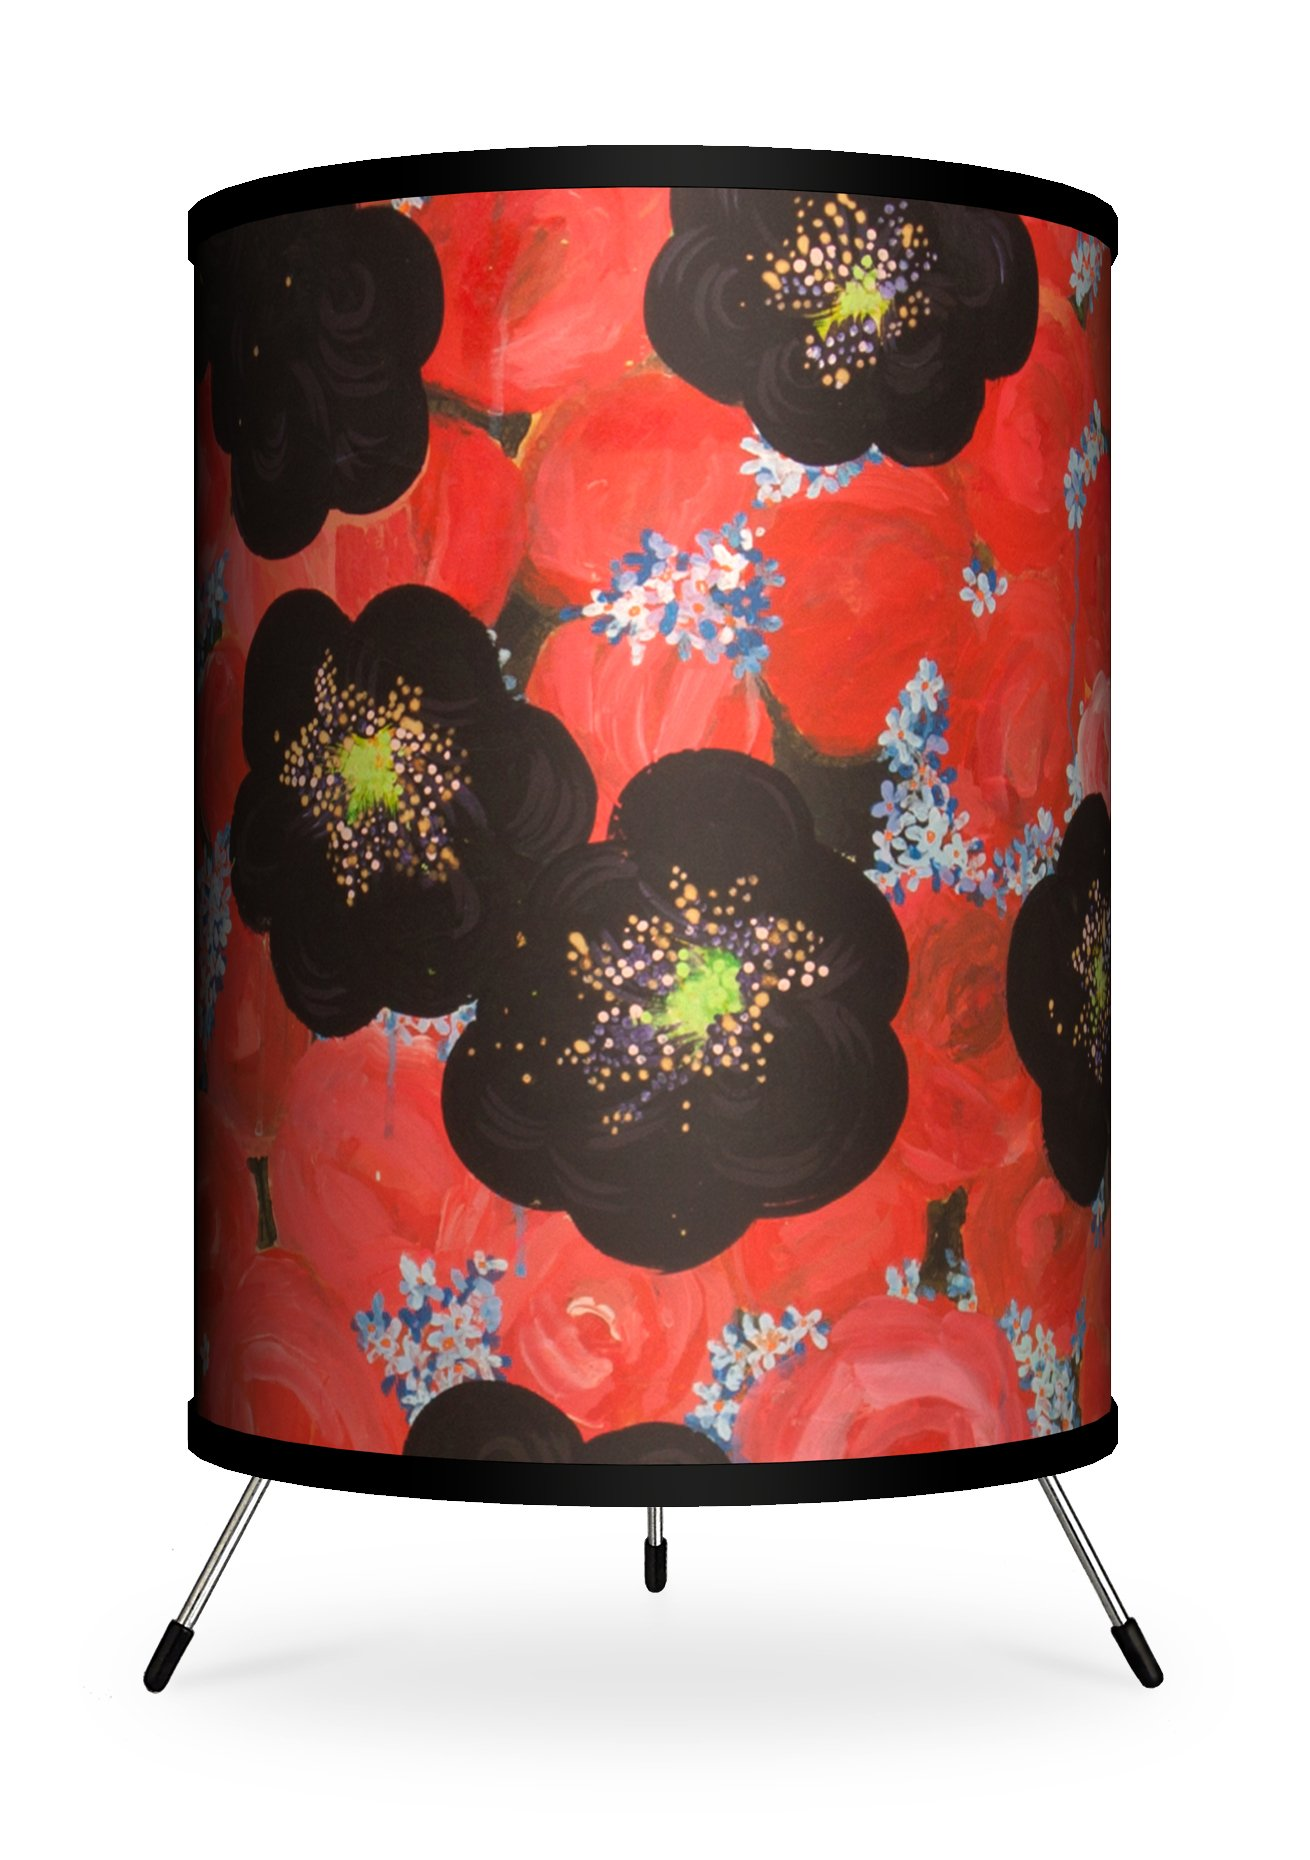 Lamp-In-A-Box TRI-FAR-AGFLO Feature Artist Alexandra Jurassic Flower Field Rose Tripod Lamp